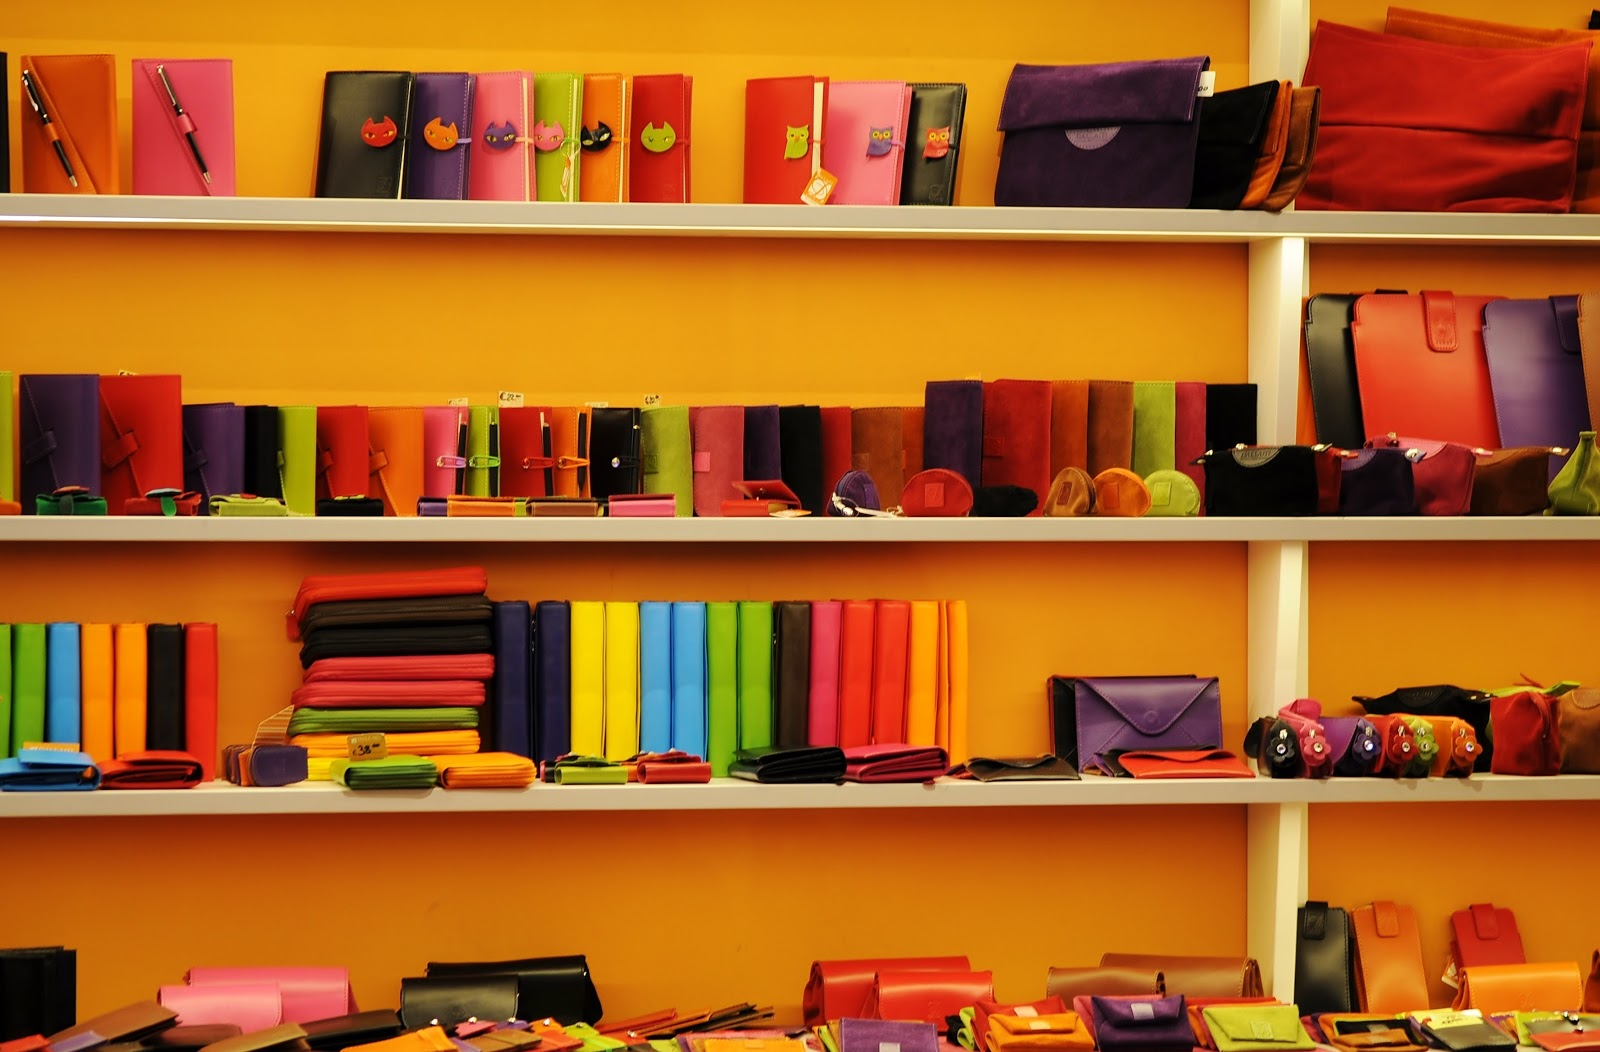 Colorful wallets and purses on shelves